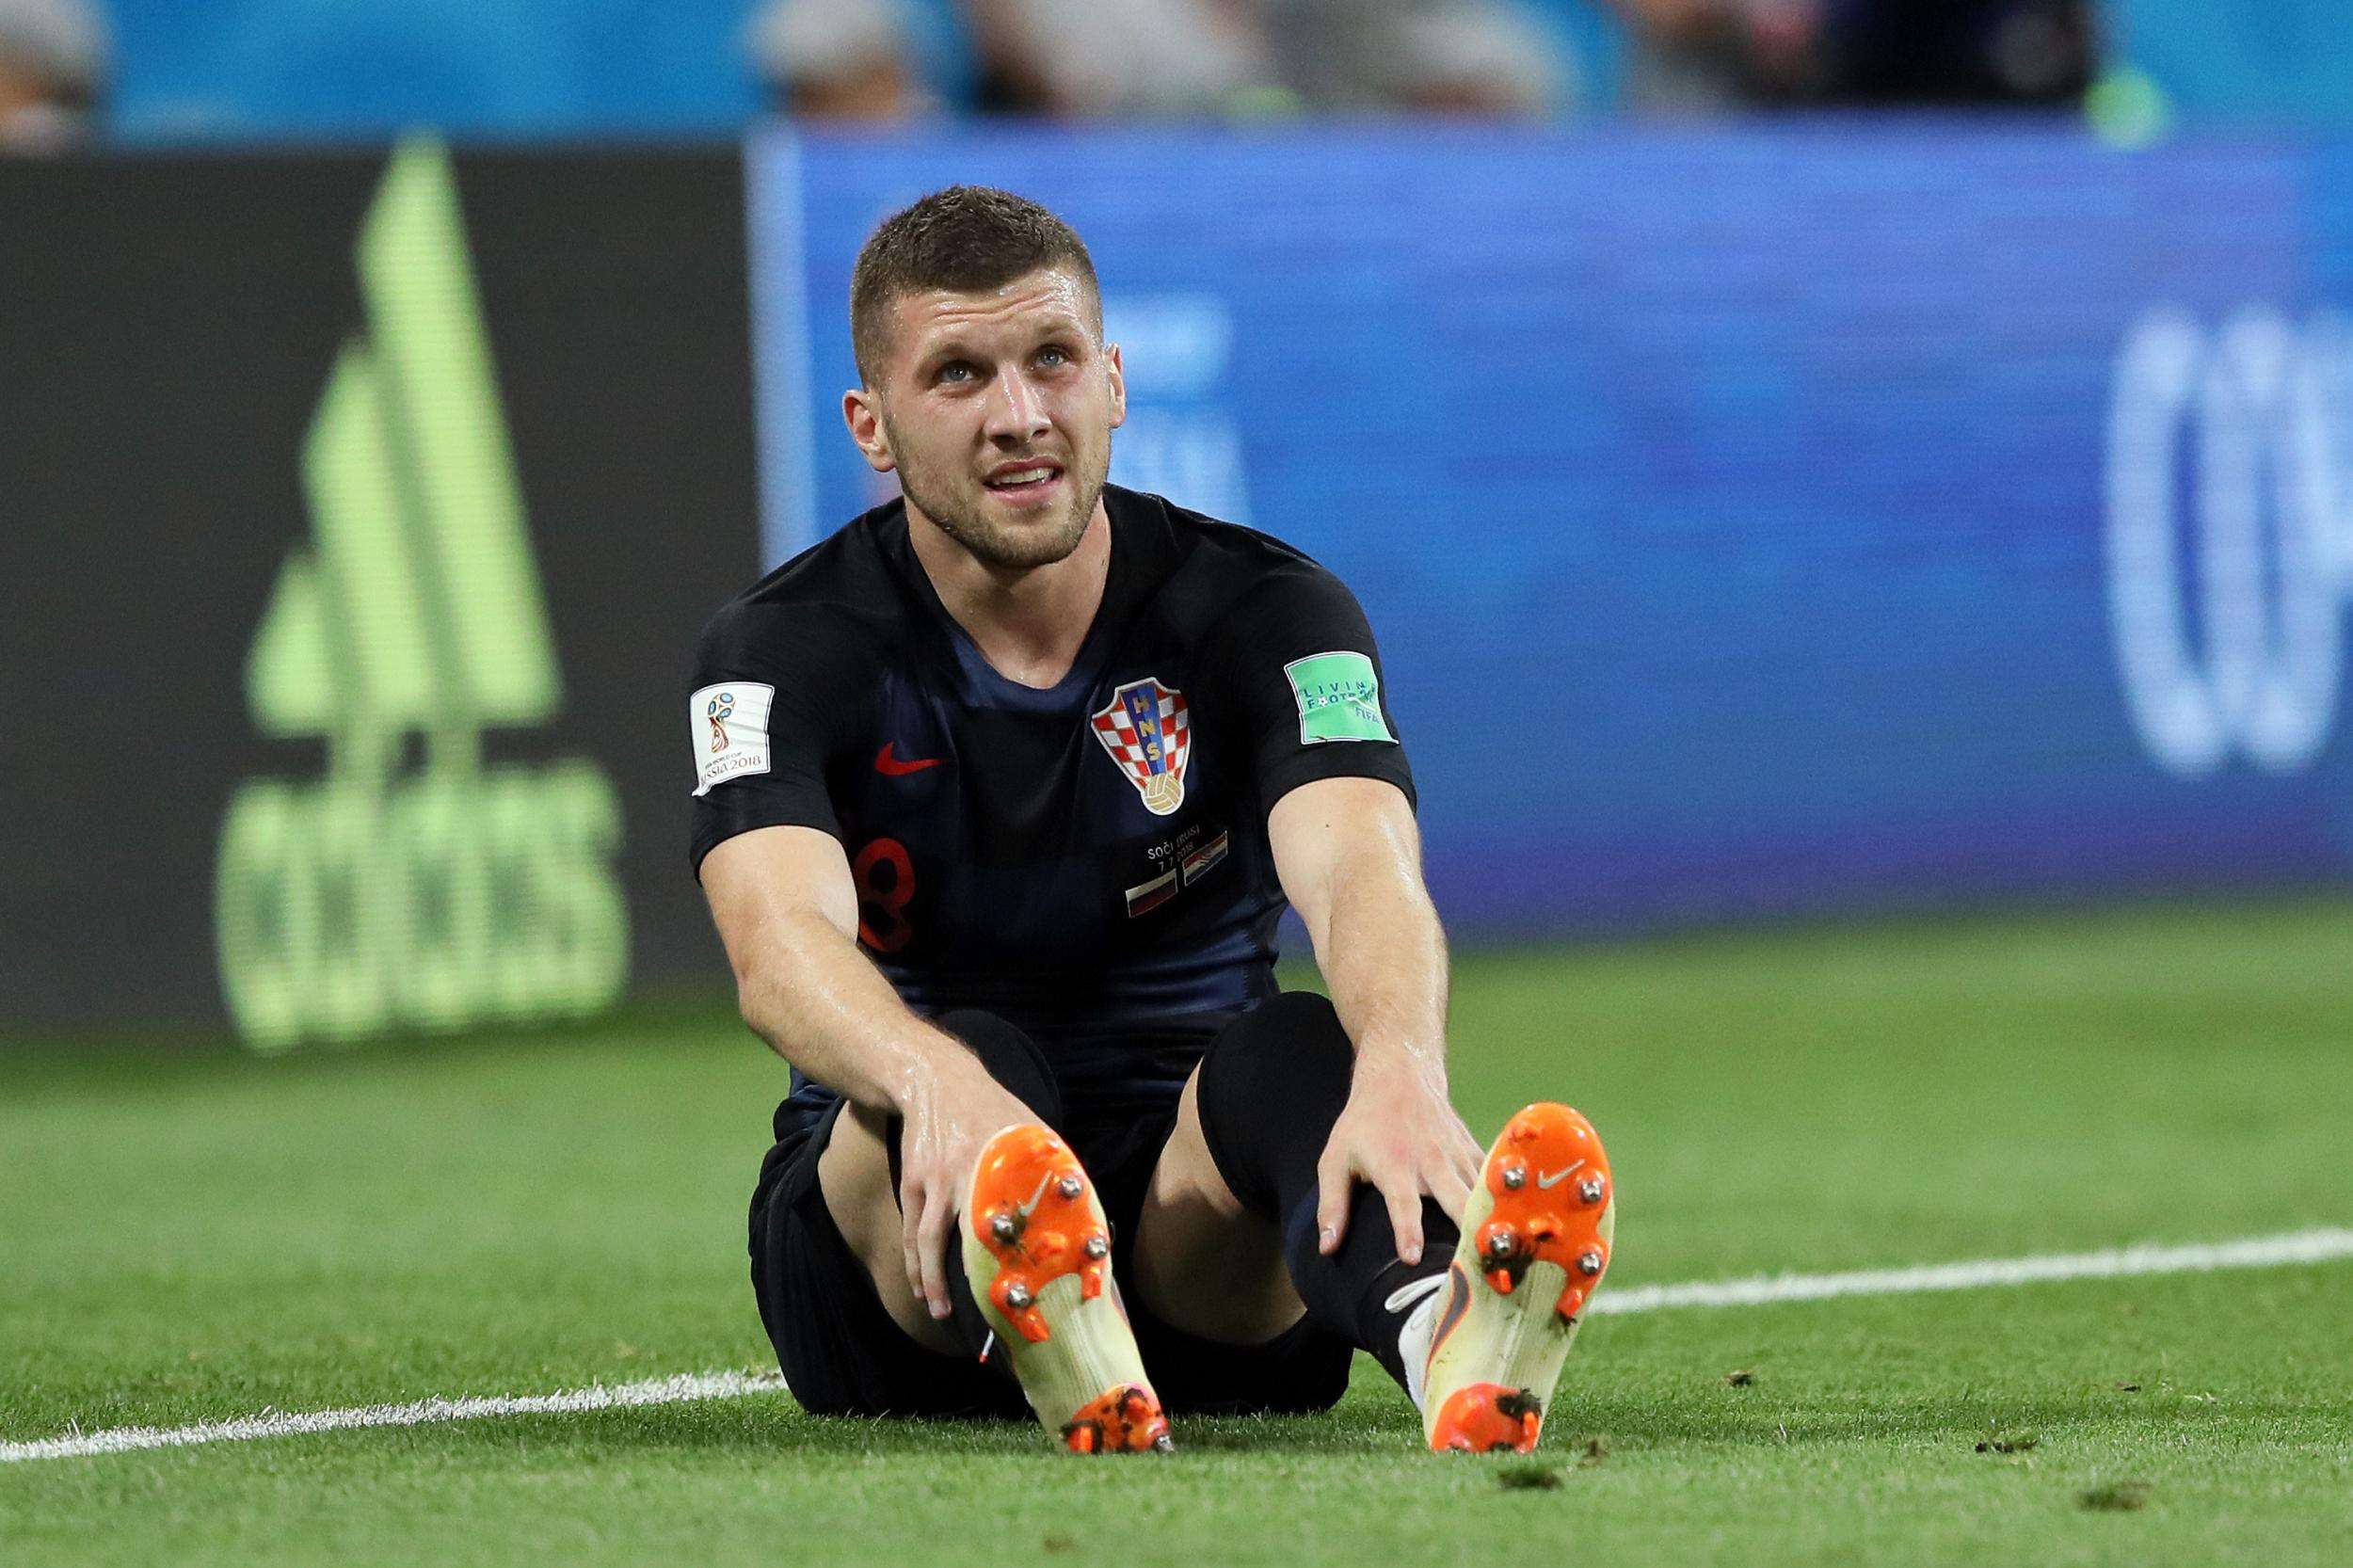 World Cup 2018: Croatia defender avoids match ban over post